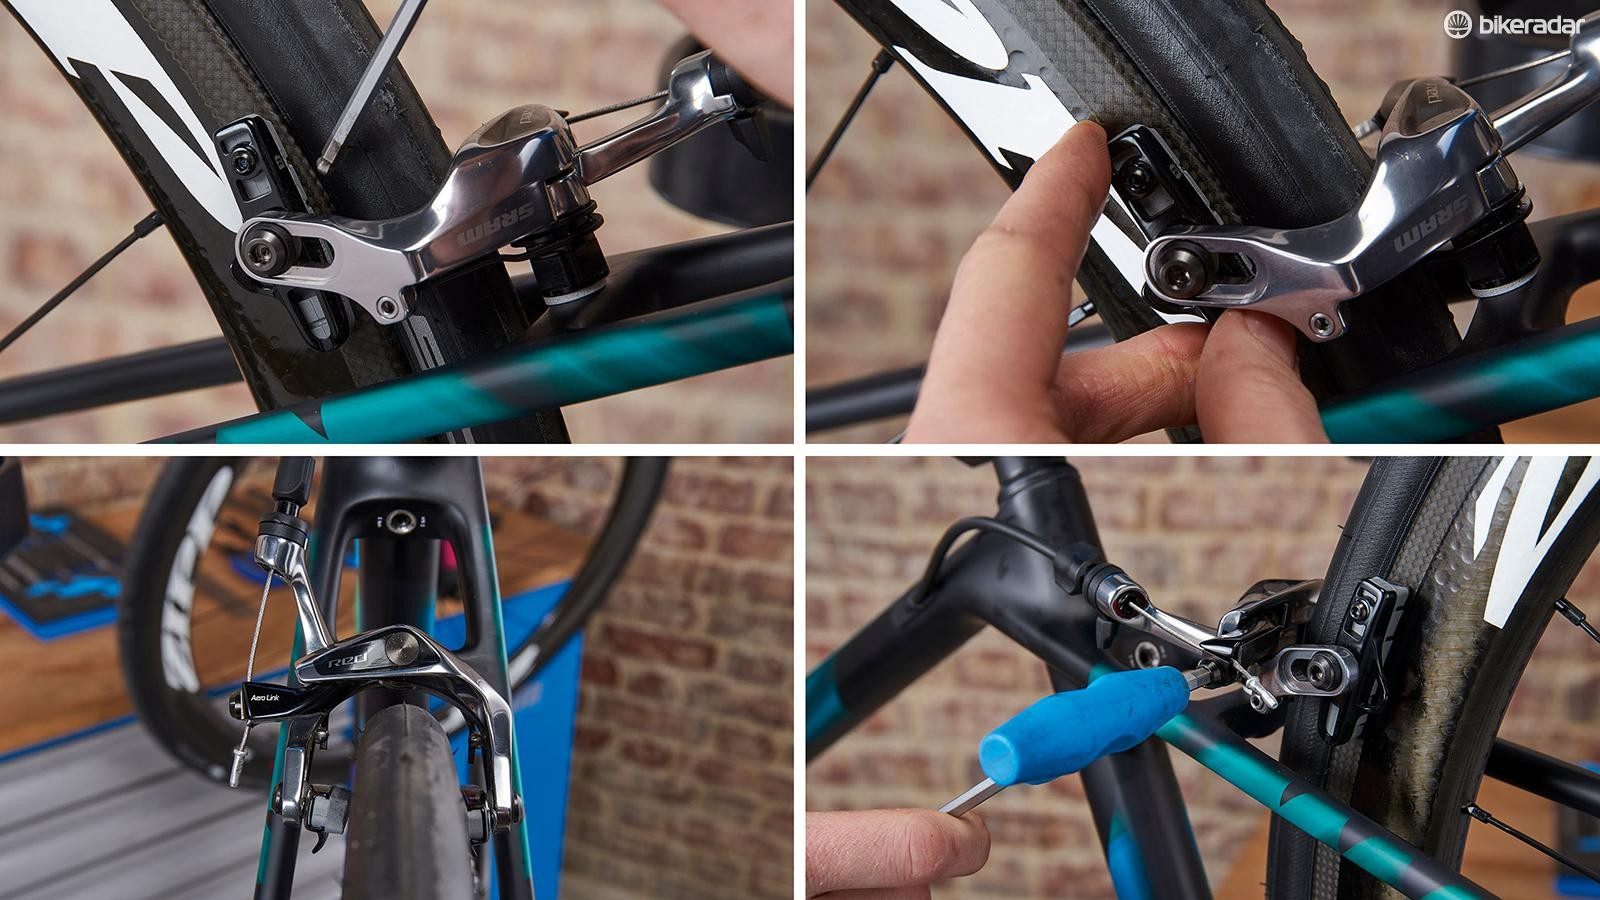 Six simple steps to setting up rim brakes